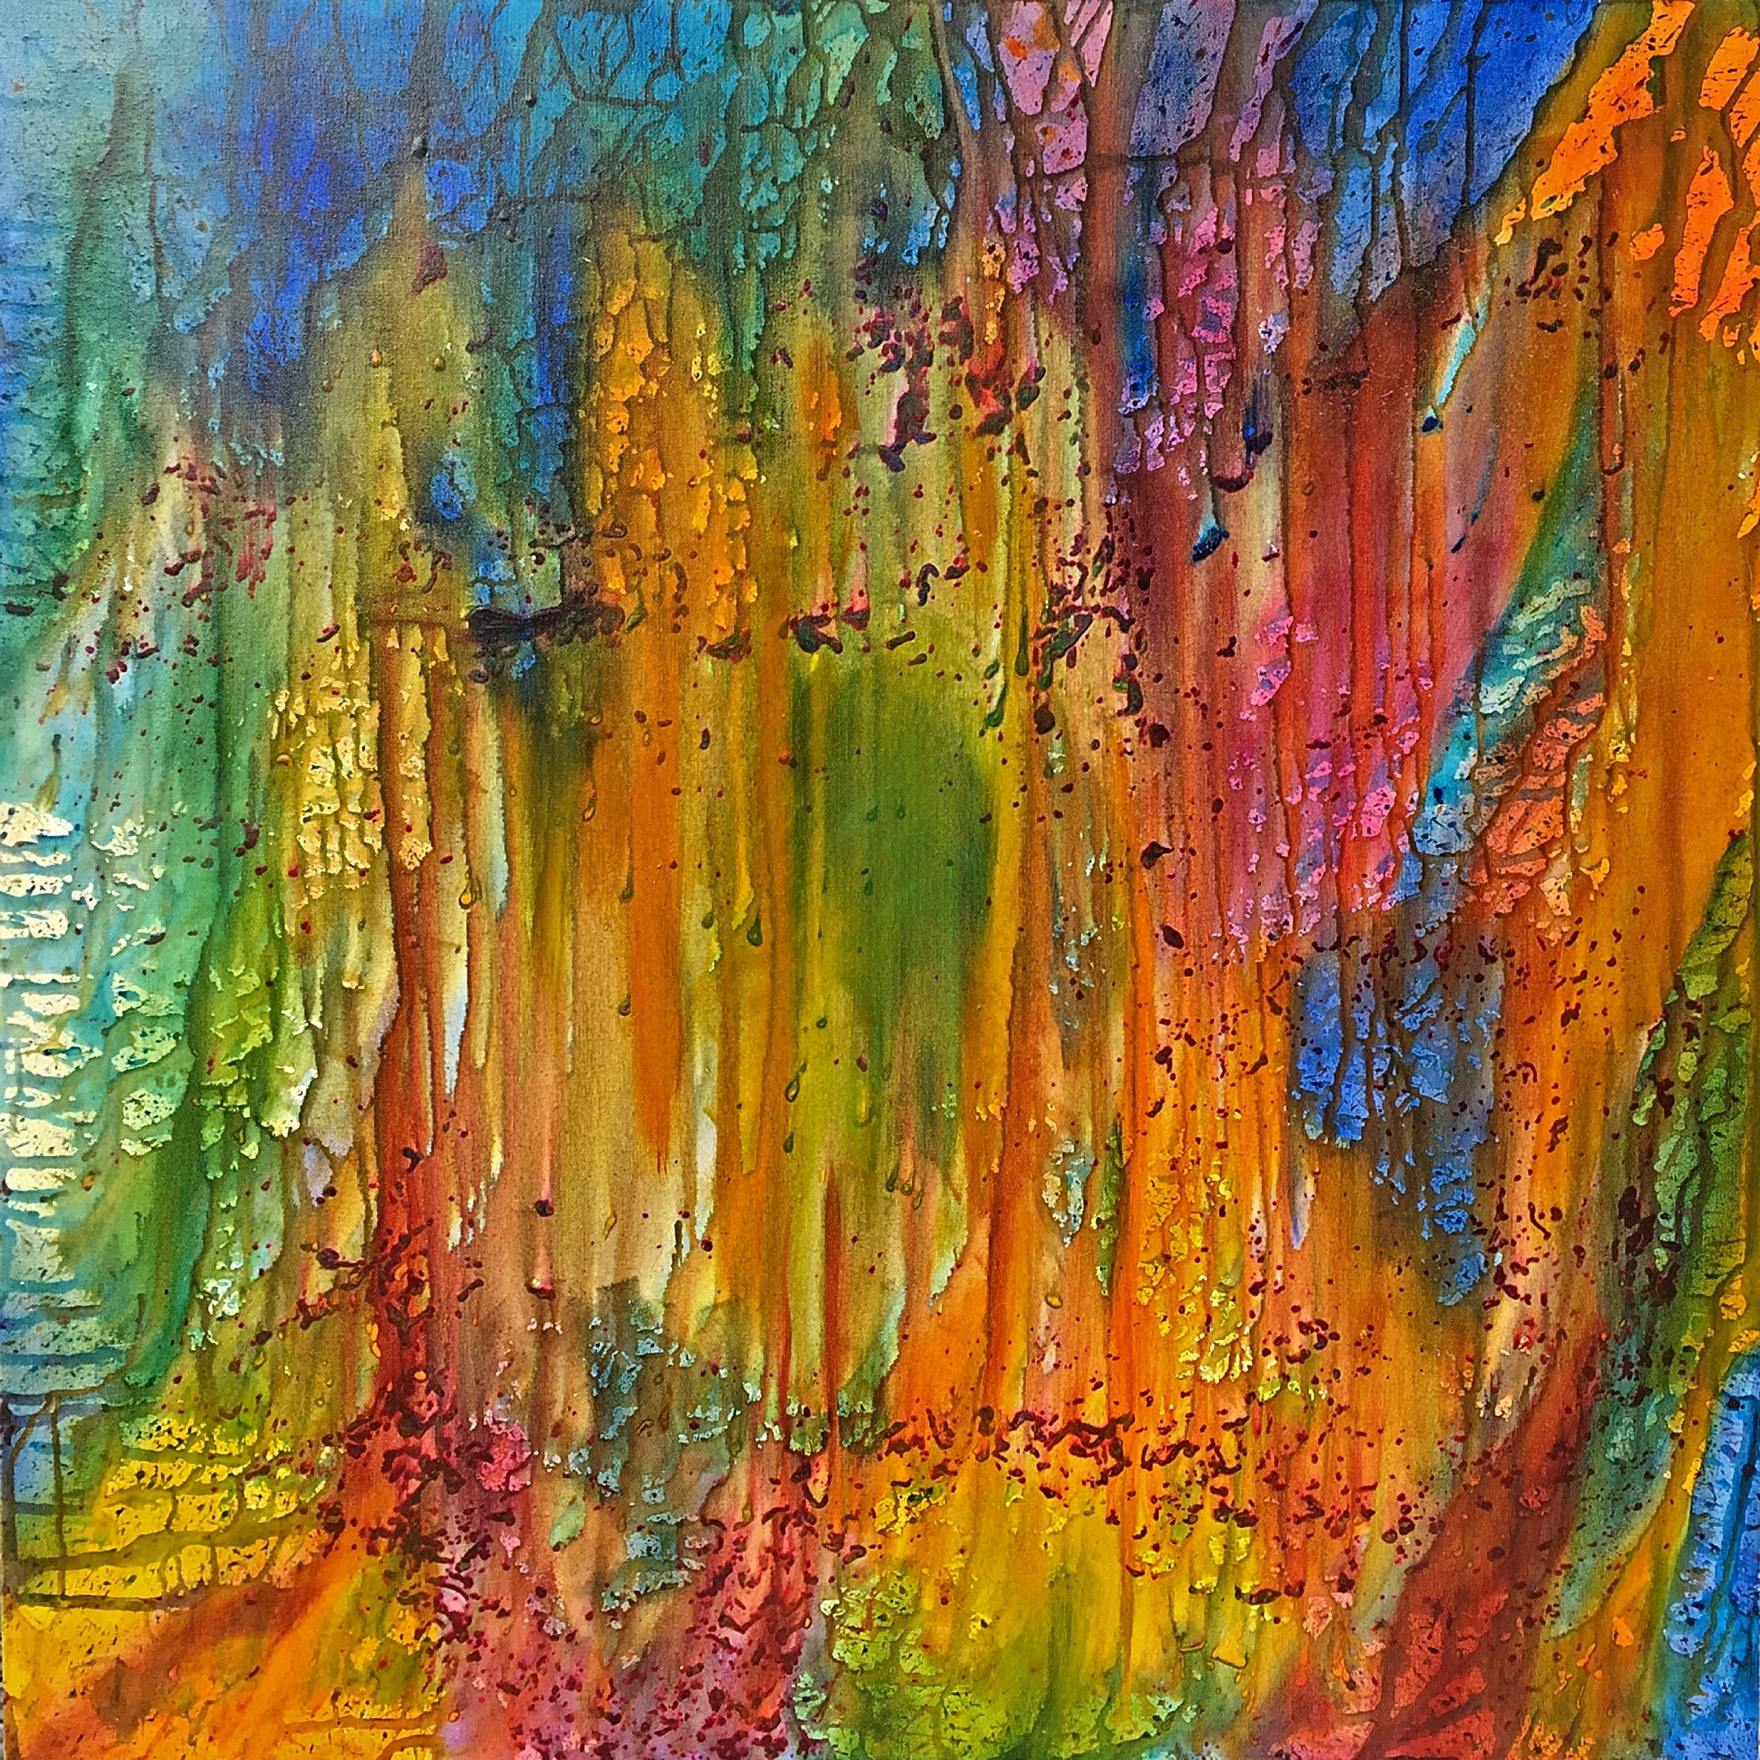 Ventotene Abstract Expressionist Oil on Canvas